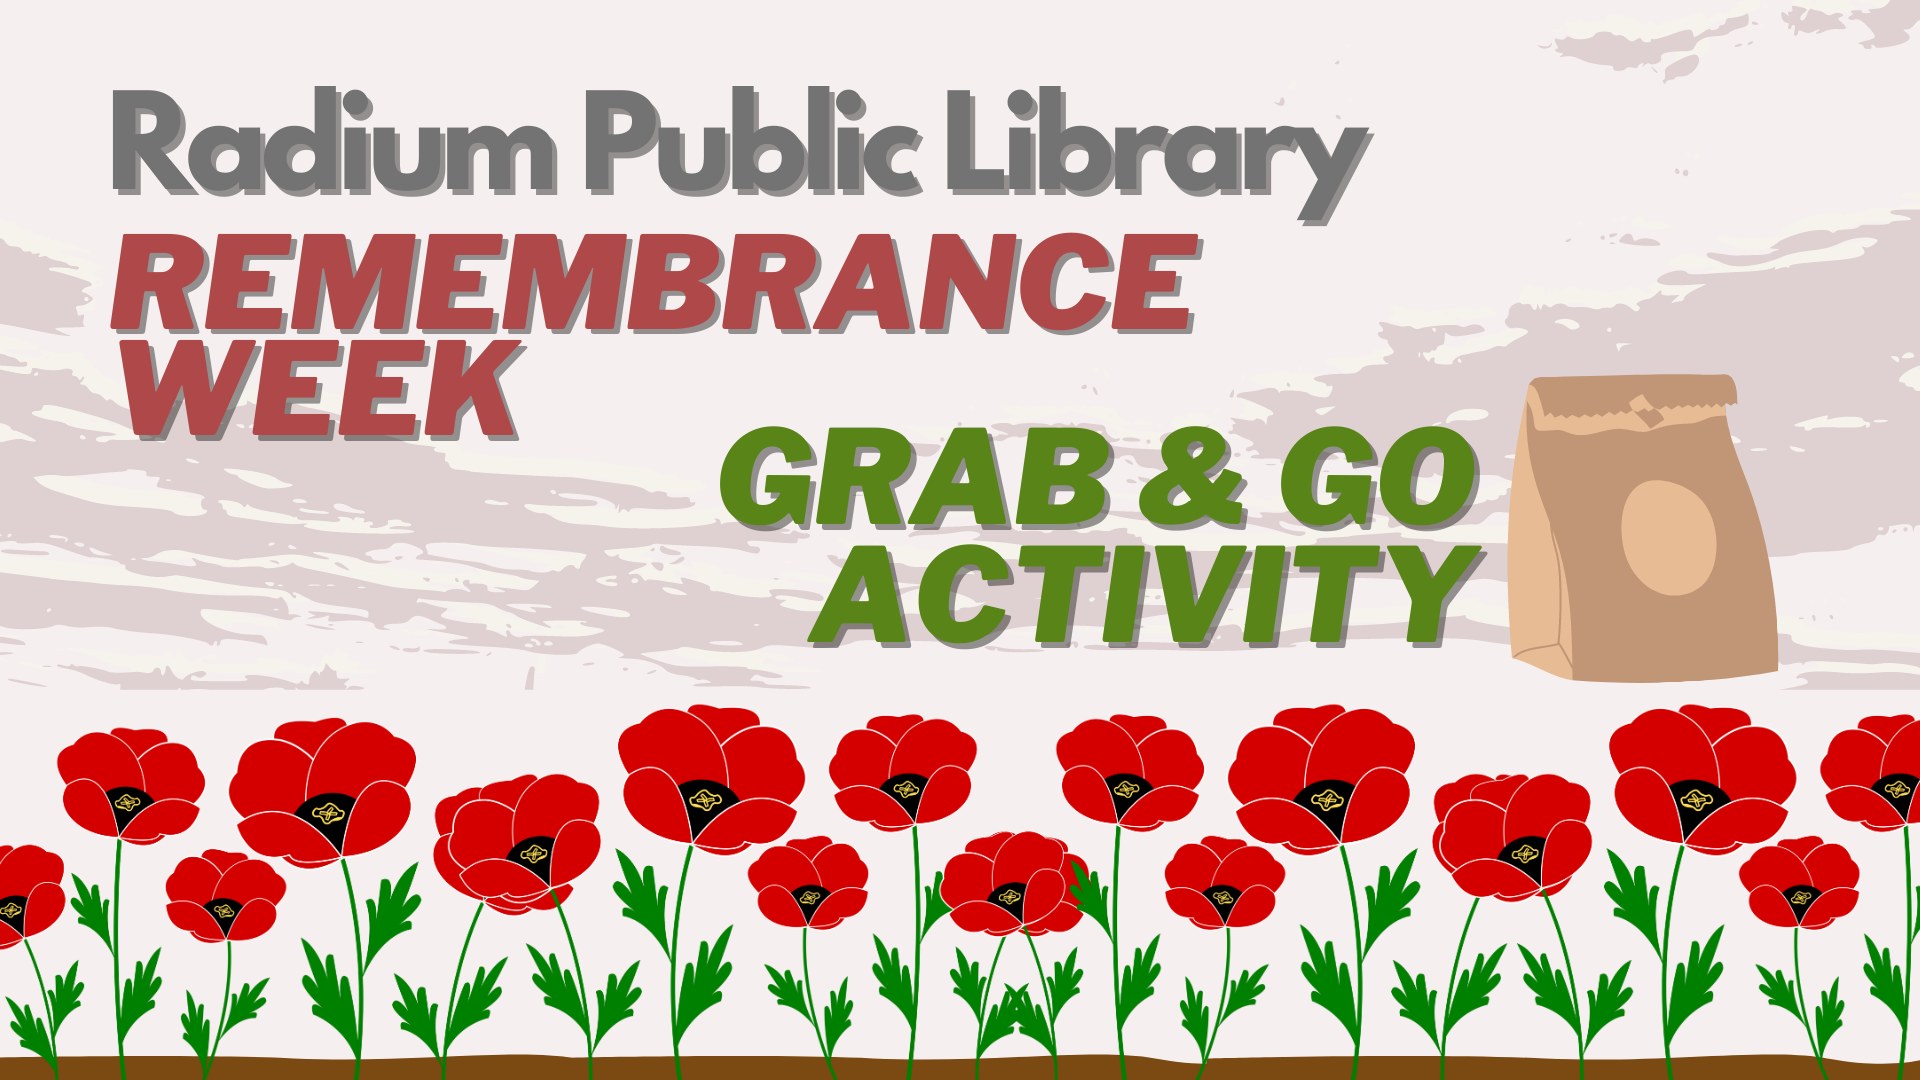 Remembrance Week Grab & Go Activity @ Radium Public Library